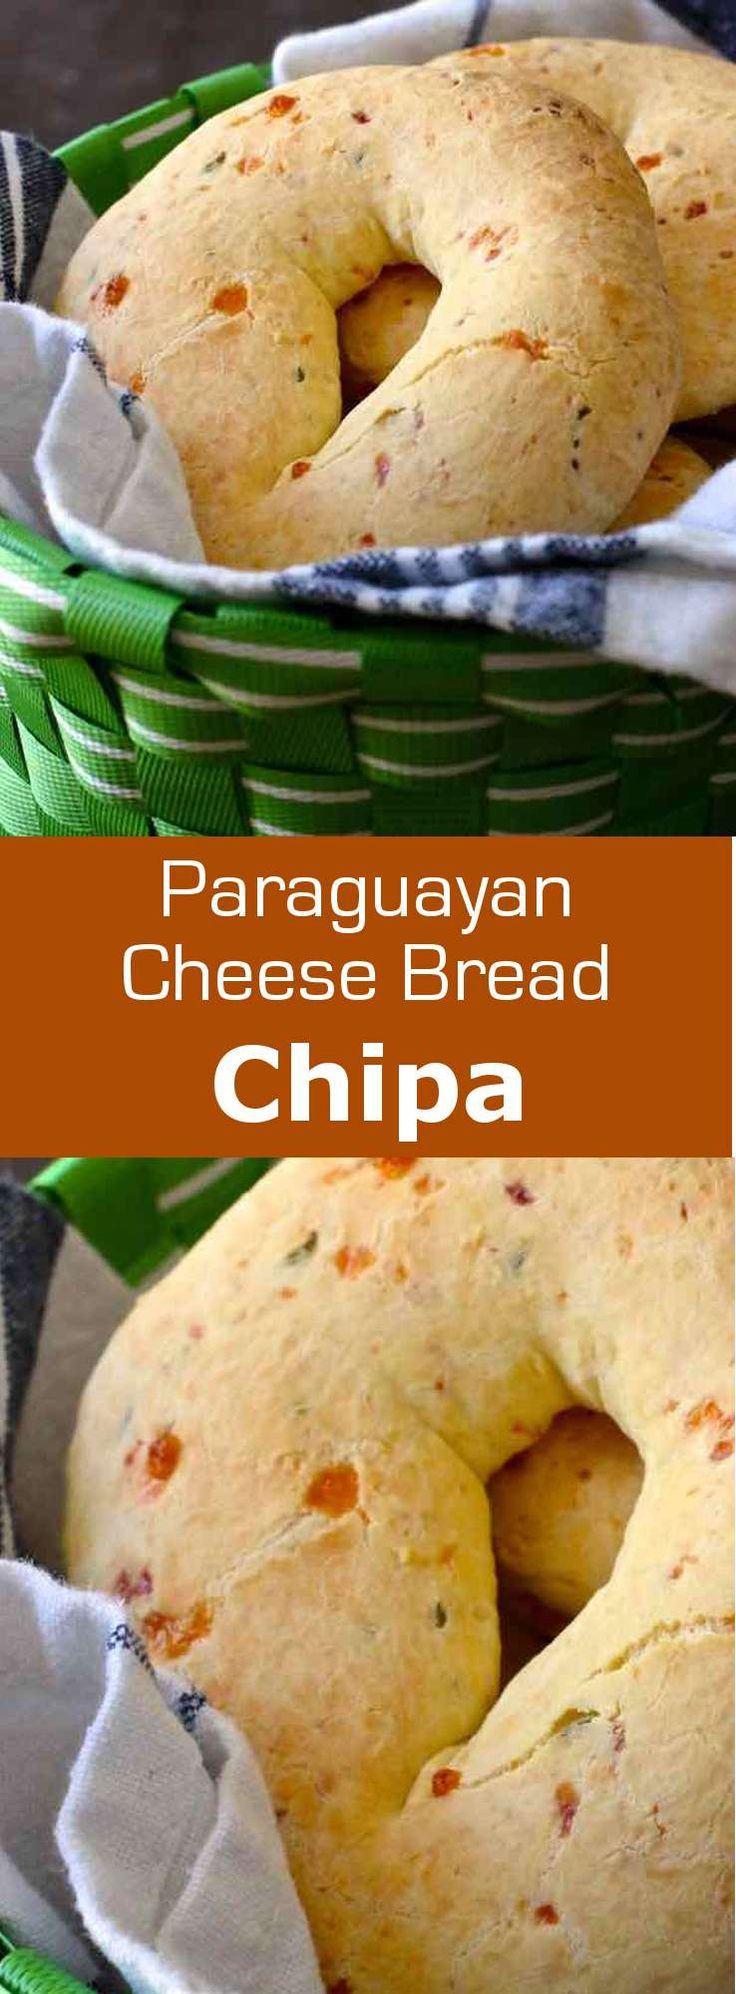 Chipa is a small traditional cheese bread from Paraguay, which is especially…